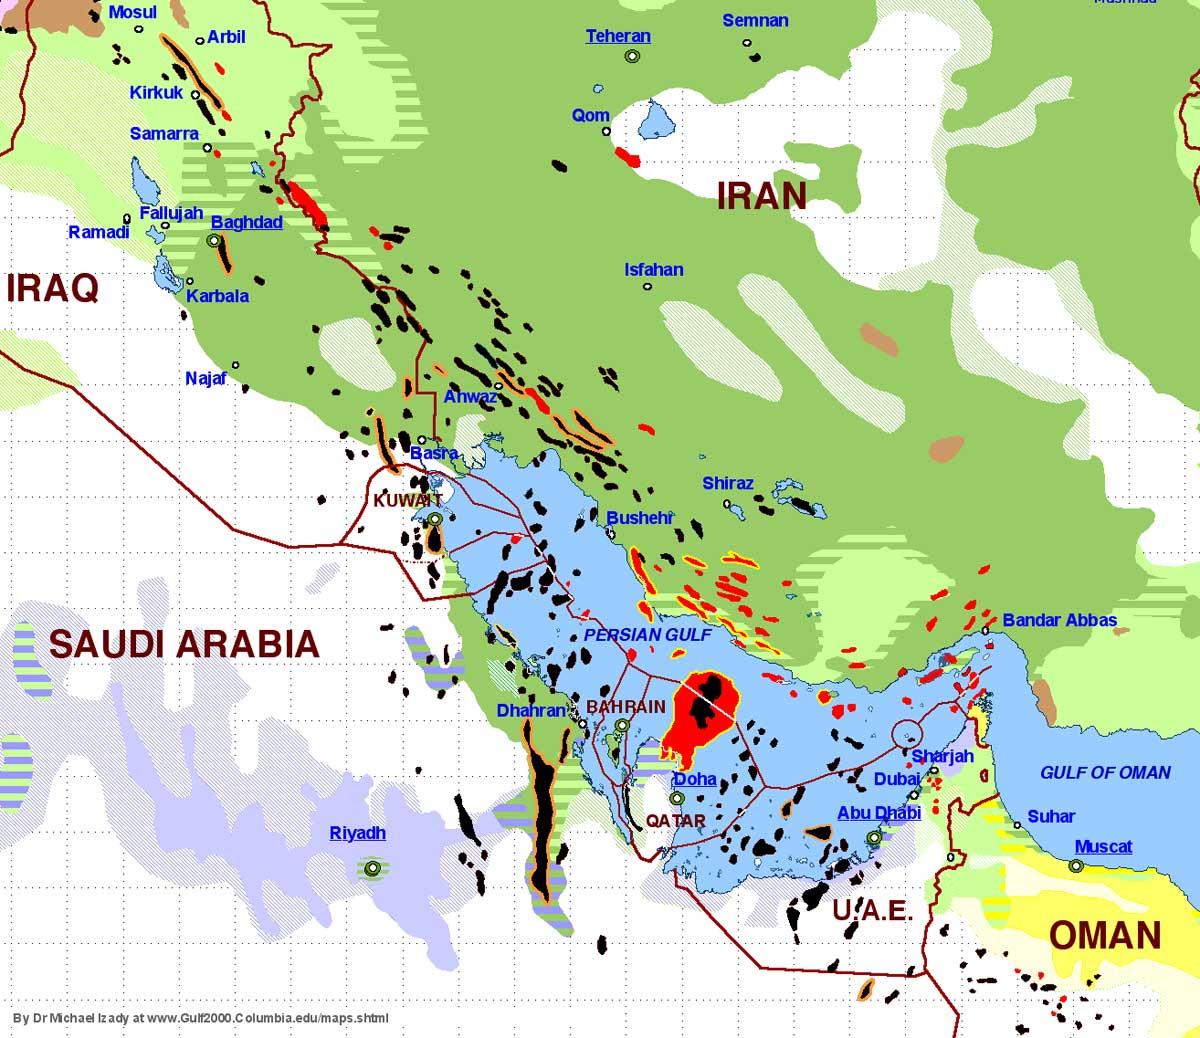 Oil (black) and gas (red) deposits are mainly found under predominantly Shiite populated areas (dark green). Sunni areas are highlighted in light green, Wahhabi (a Sunni branch) in purple. Here you find a map of the wider region. Source: Dr. Michael Izady at Columbia University, Gulf2000, New York.